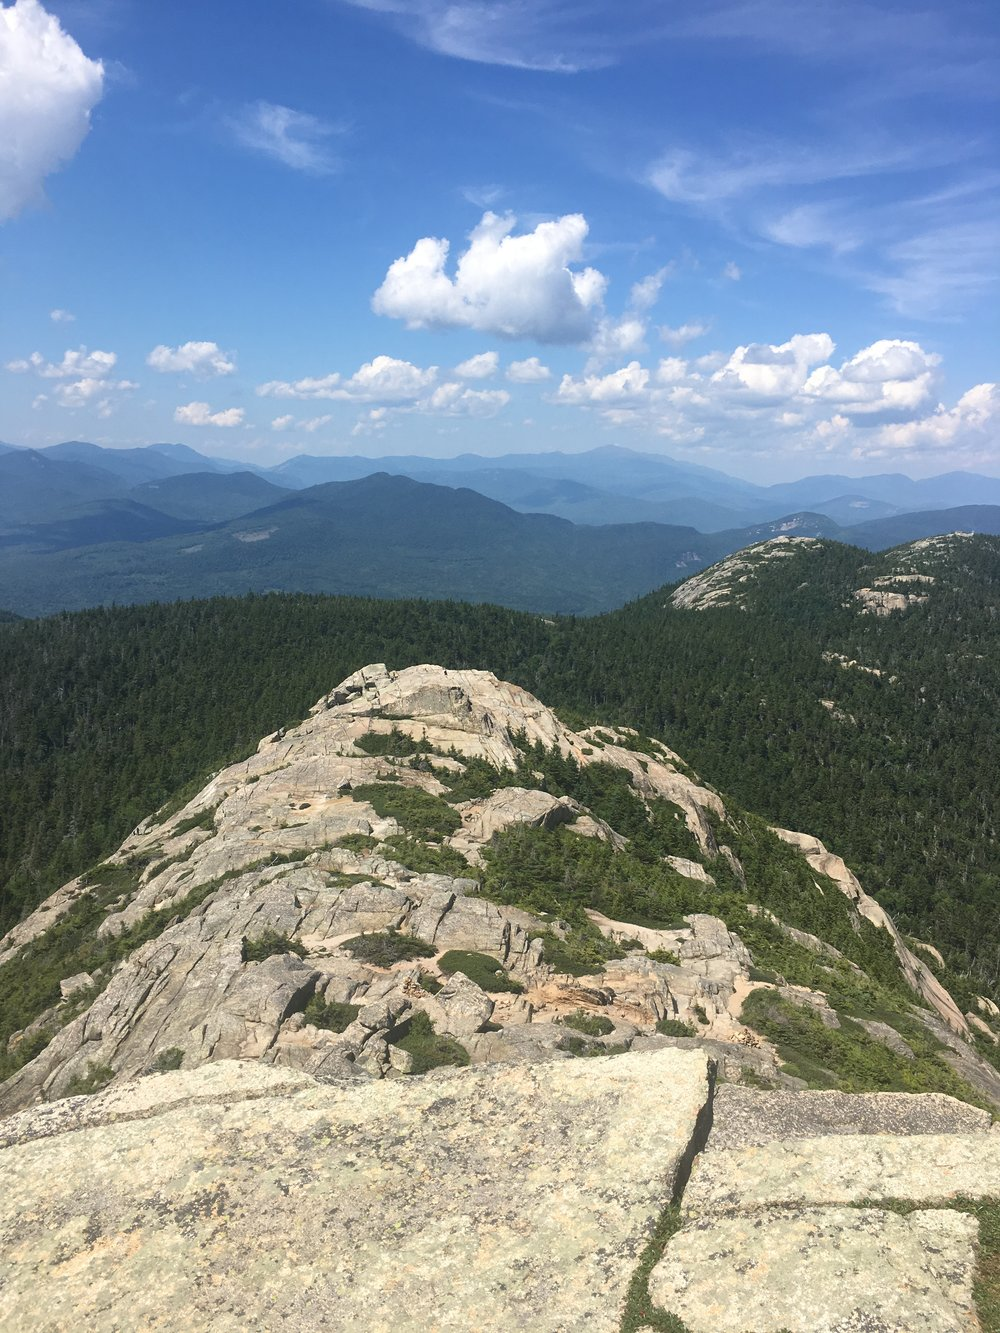 It was the perfect day and the views from the top of Chocorua were spectacular.